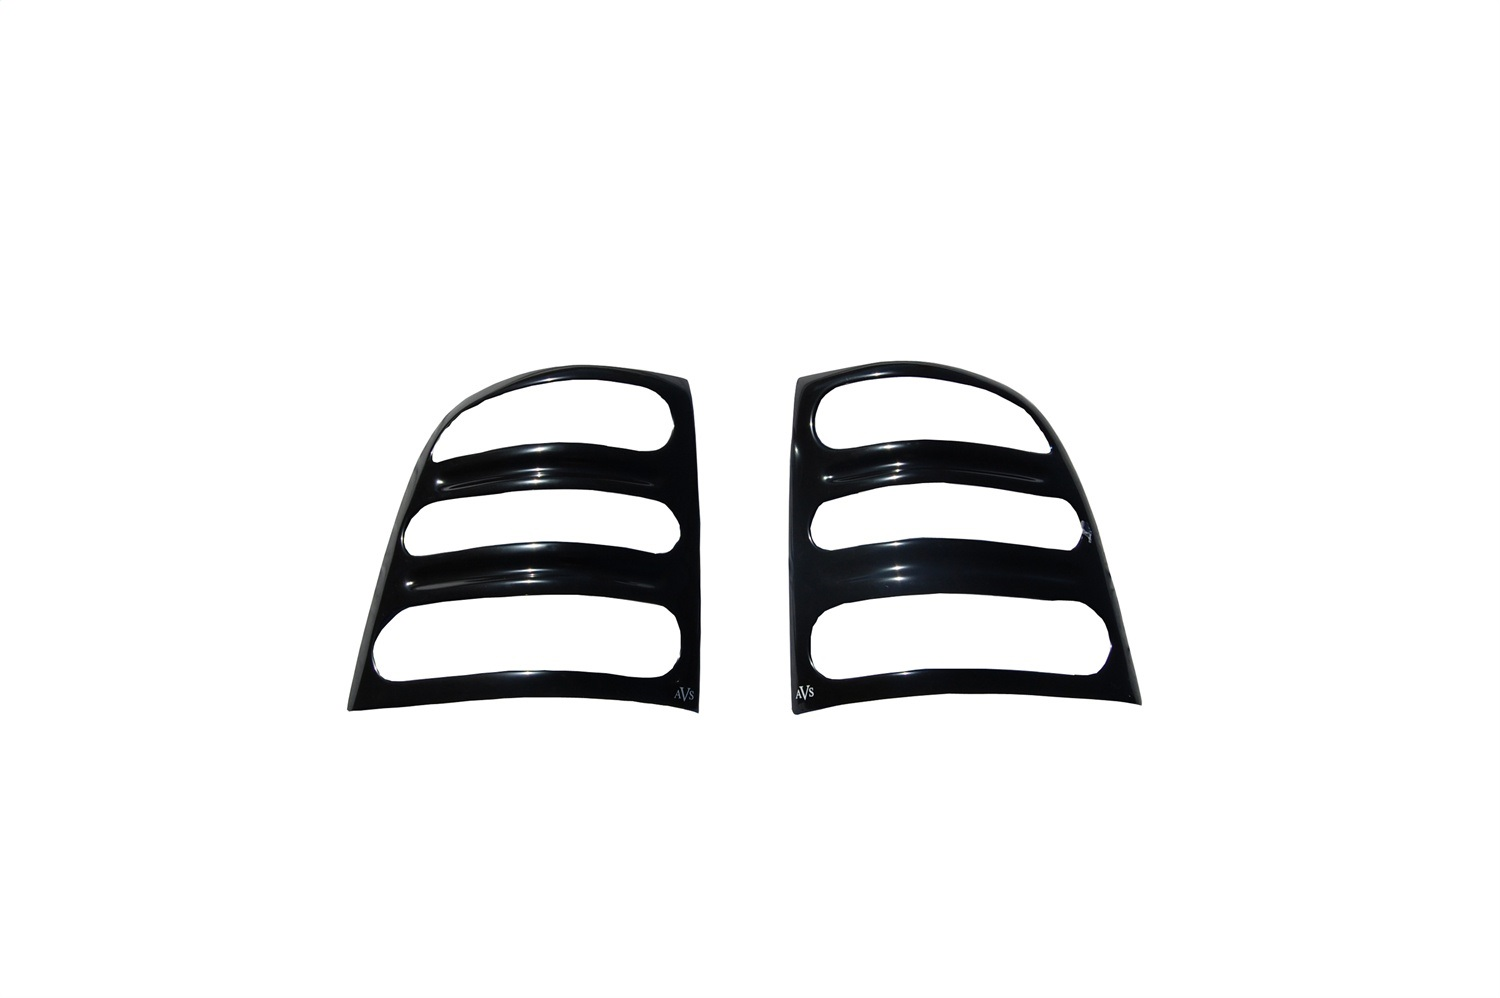 Auto Ventshade 36959 Slots Taillight Covers Fits Bravada S10 Blazer S15 Jimmy